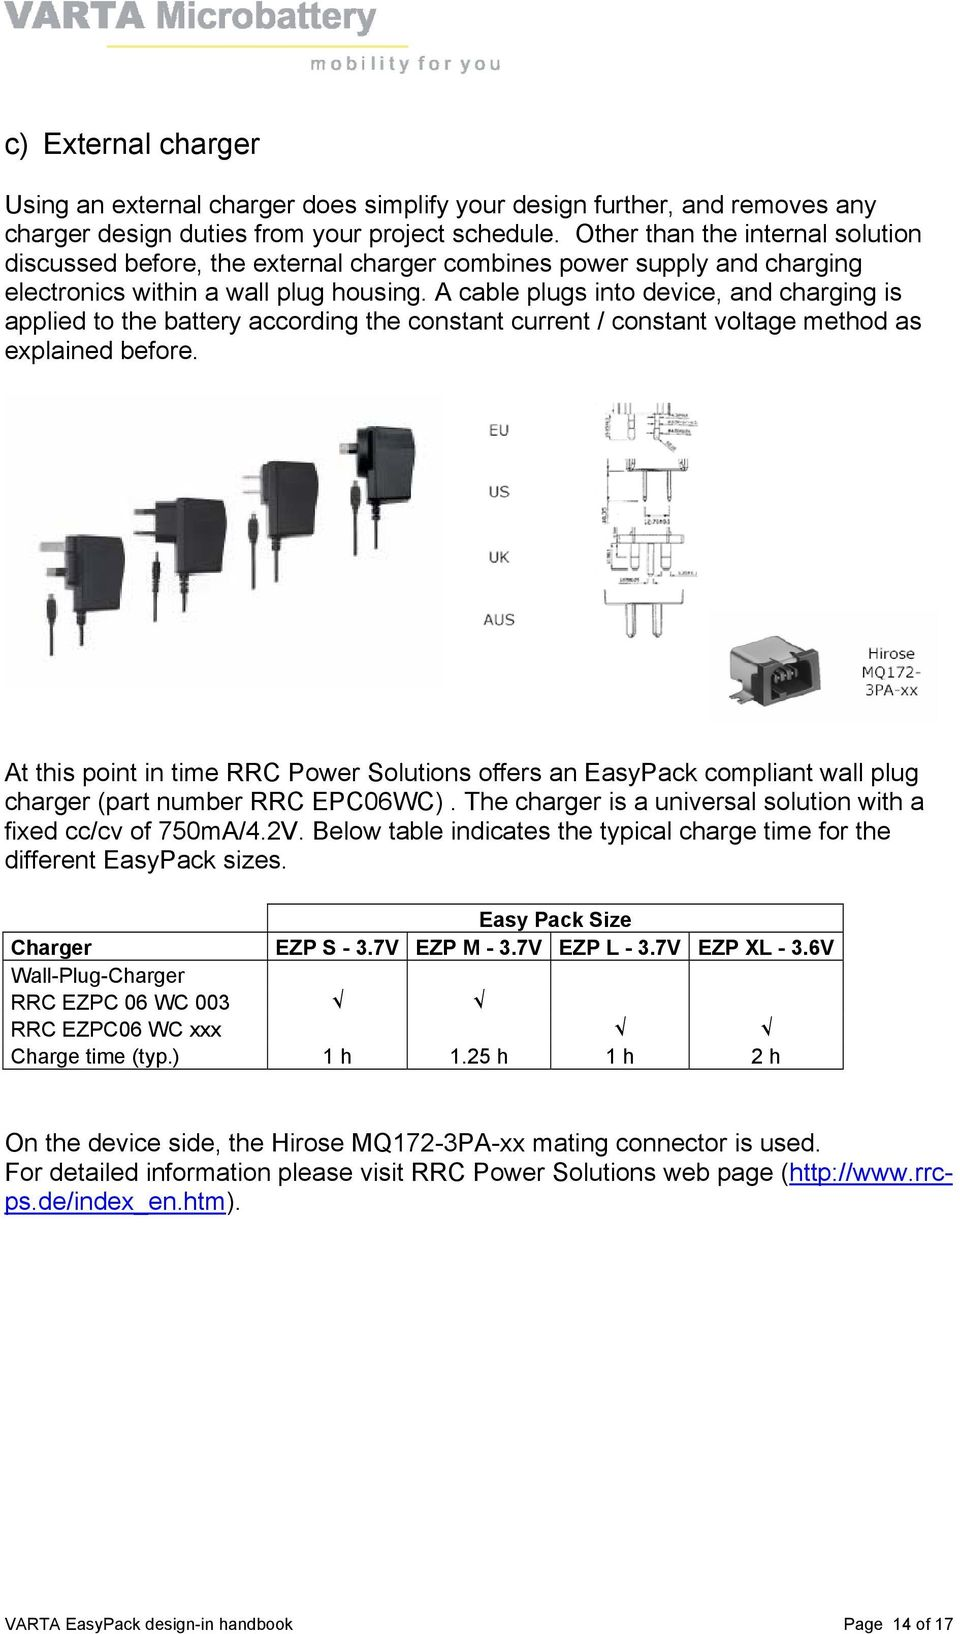 Varta Easypack Design In Handbook The Easy Way To Lithium Polymer Simple Lead Acid Battery Charger With Pb137 Regulator Circuit A Cable Plugs Into Device And Charging Is Applied According Constant